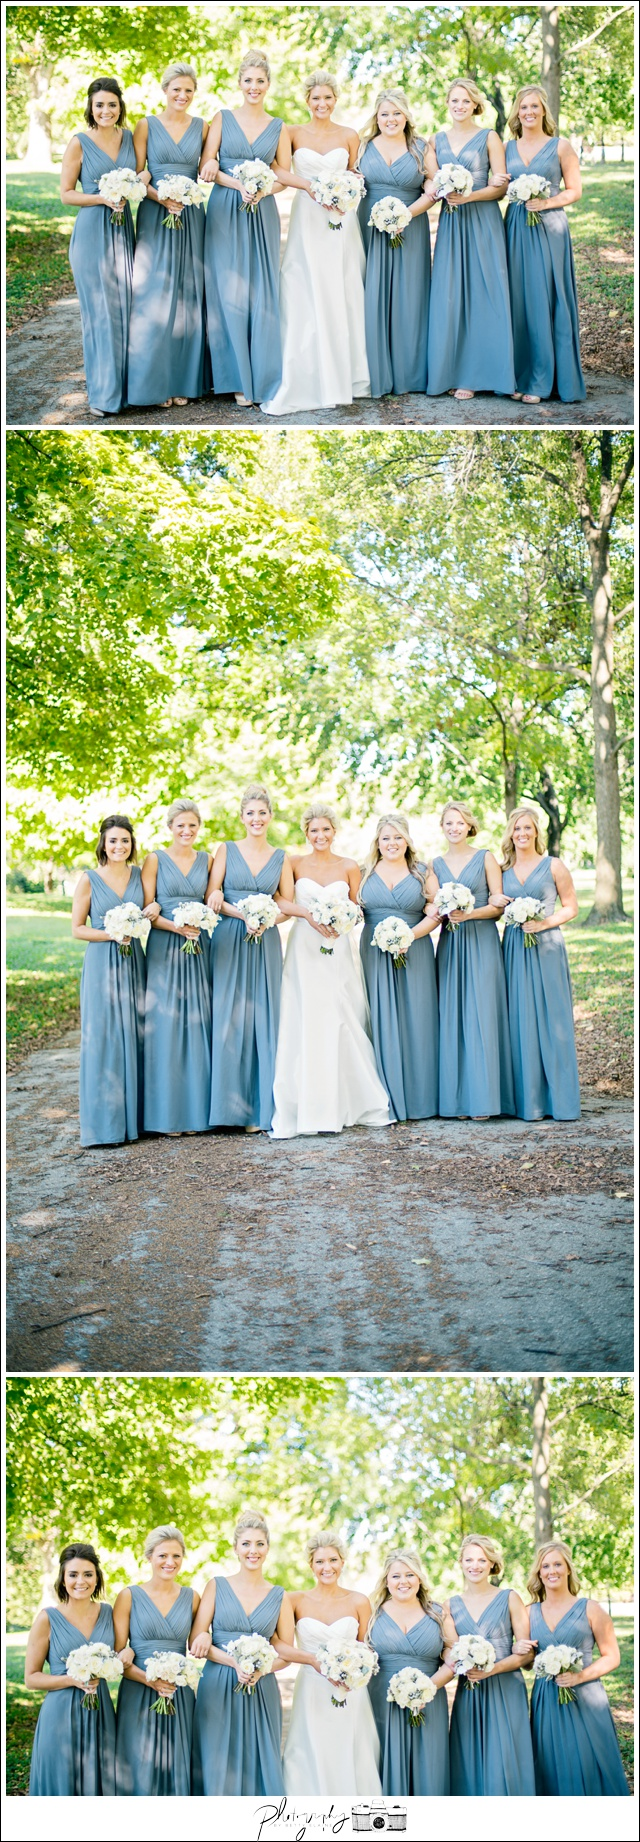 18-Bride-Bridesmaids-gray-dresses-white-bouquets-Seattle-Wedding-Photographer-Photography-by-Betty-Elaine